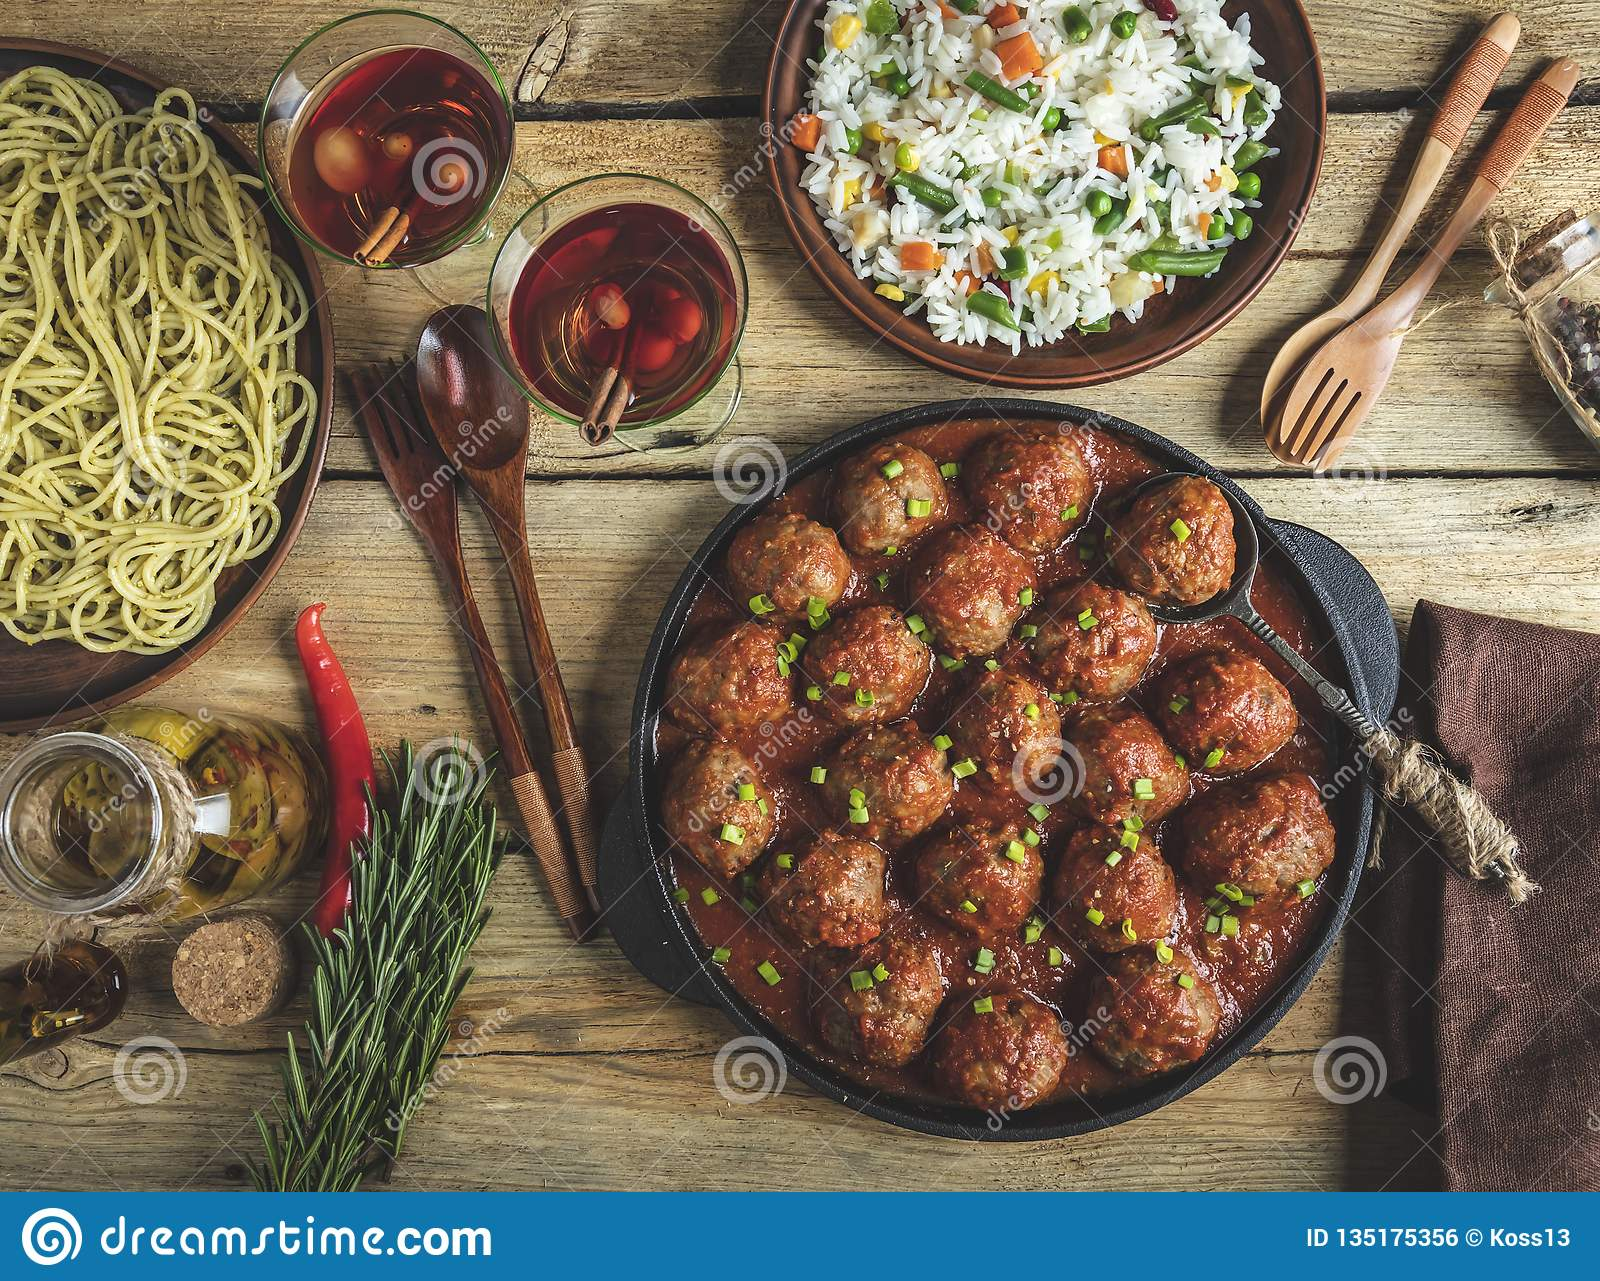 Homemade meatballs in tomato sauce. Frying pan on a wooden surface, rice with vegetables, pasta